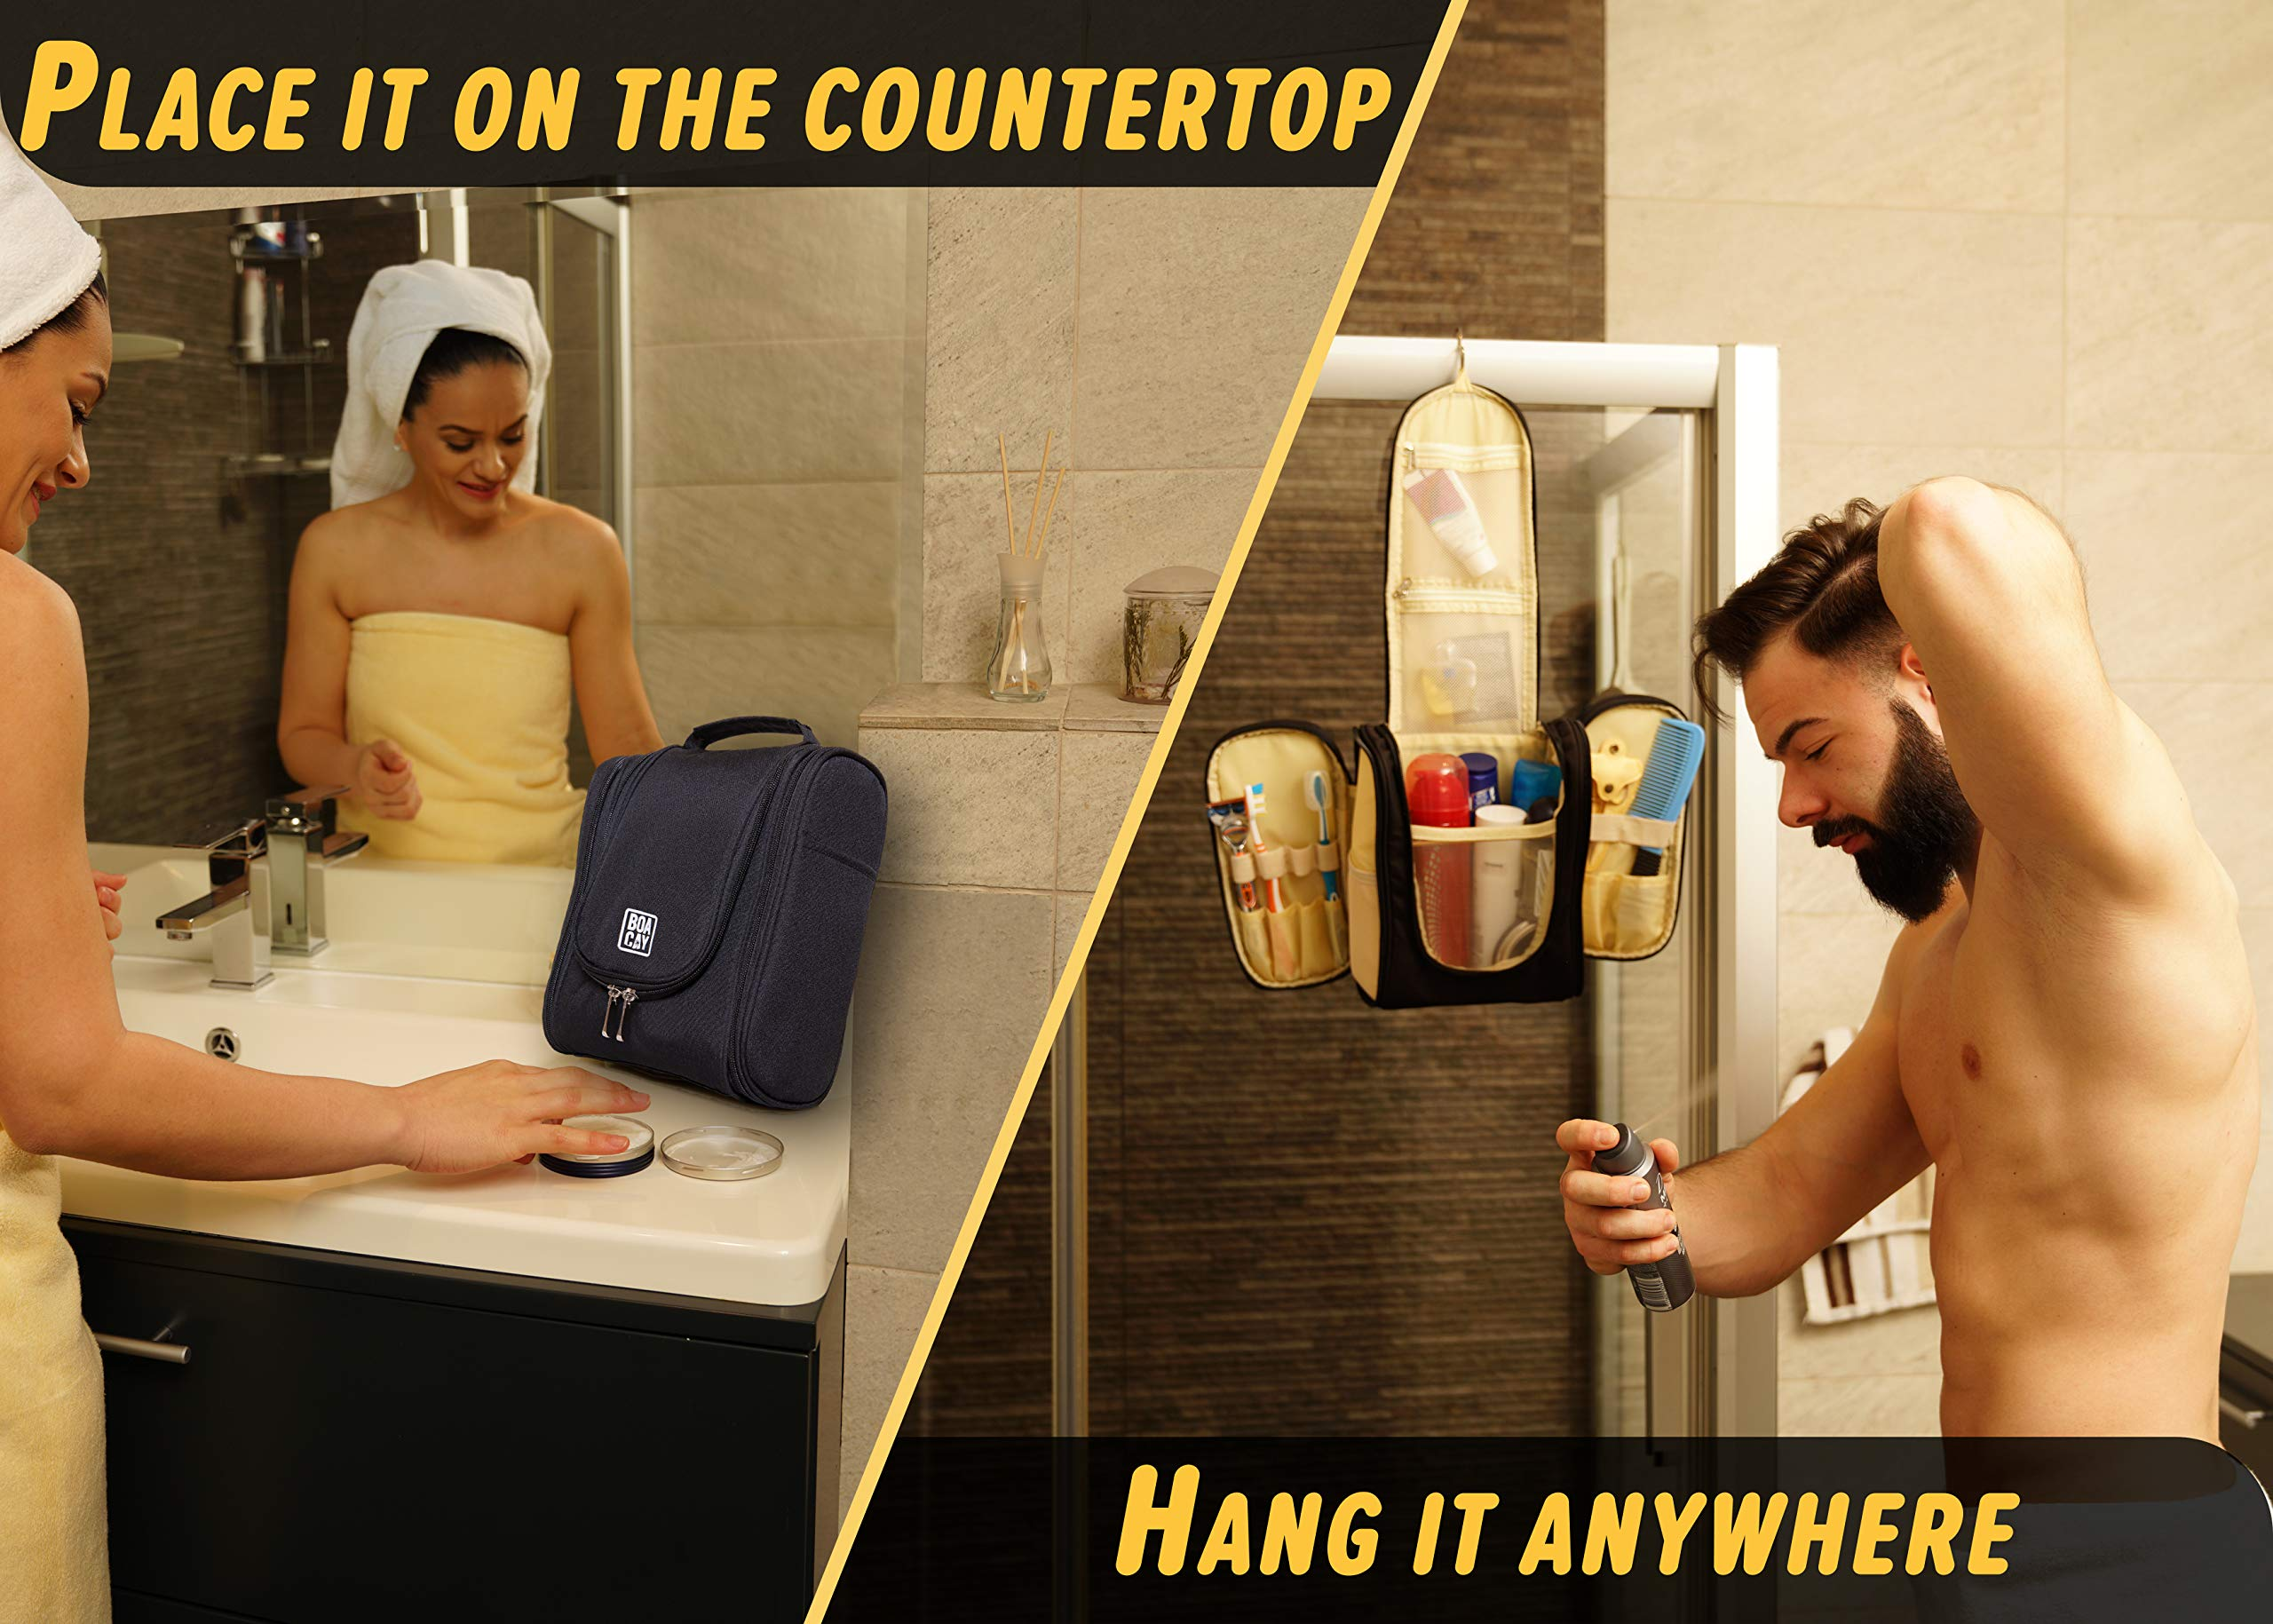 Premium-Hanging-Travel-Toiletry-Bag-for-Women-and-Men-Hygiene-Bag-Bathroom-and-Shower-Organizer-Kit-with-Elastic-Band-Holders-for-Toiletries-Cosmetics-Makeup-Brushes